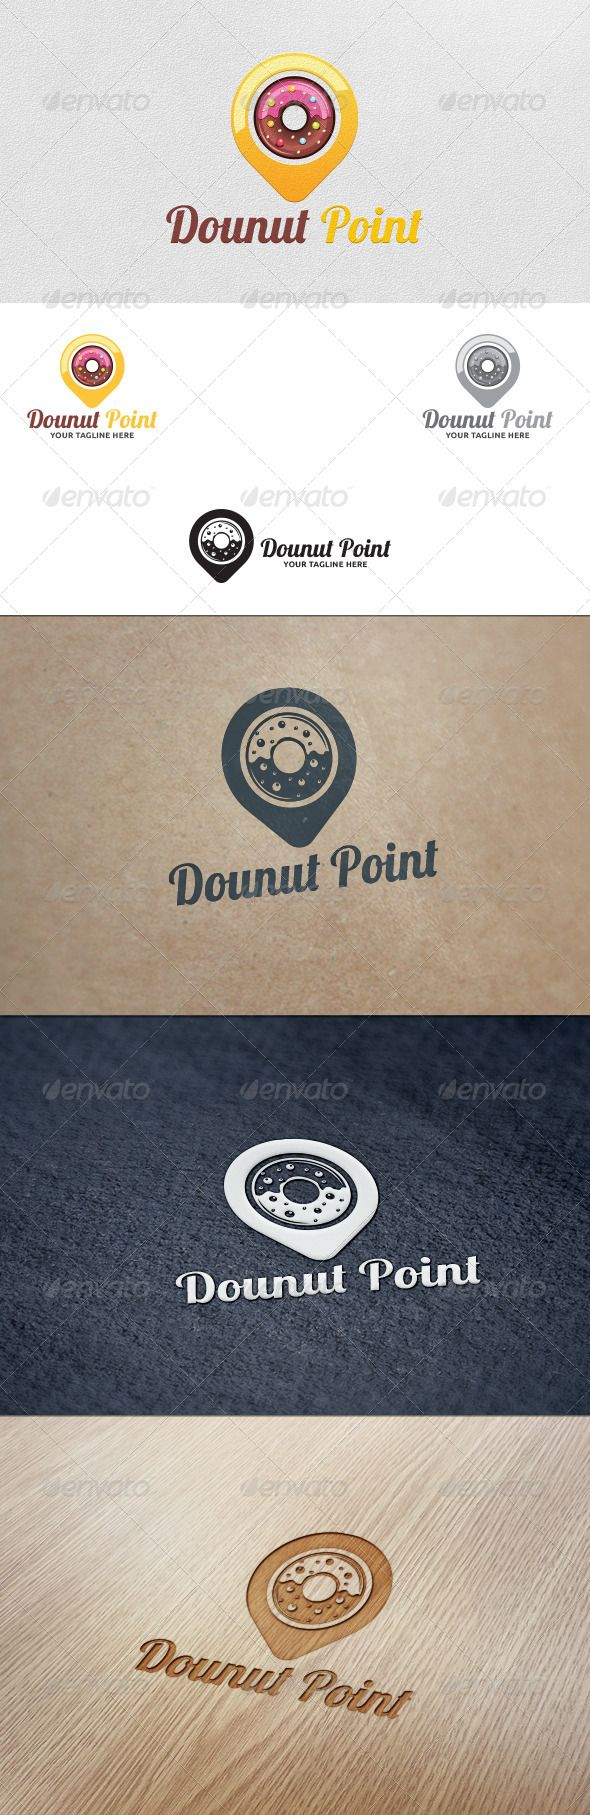 Donut Point - Logo Template